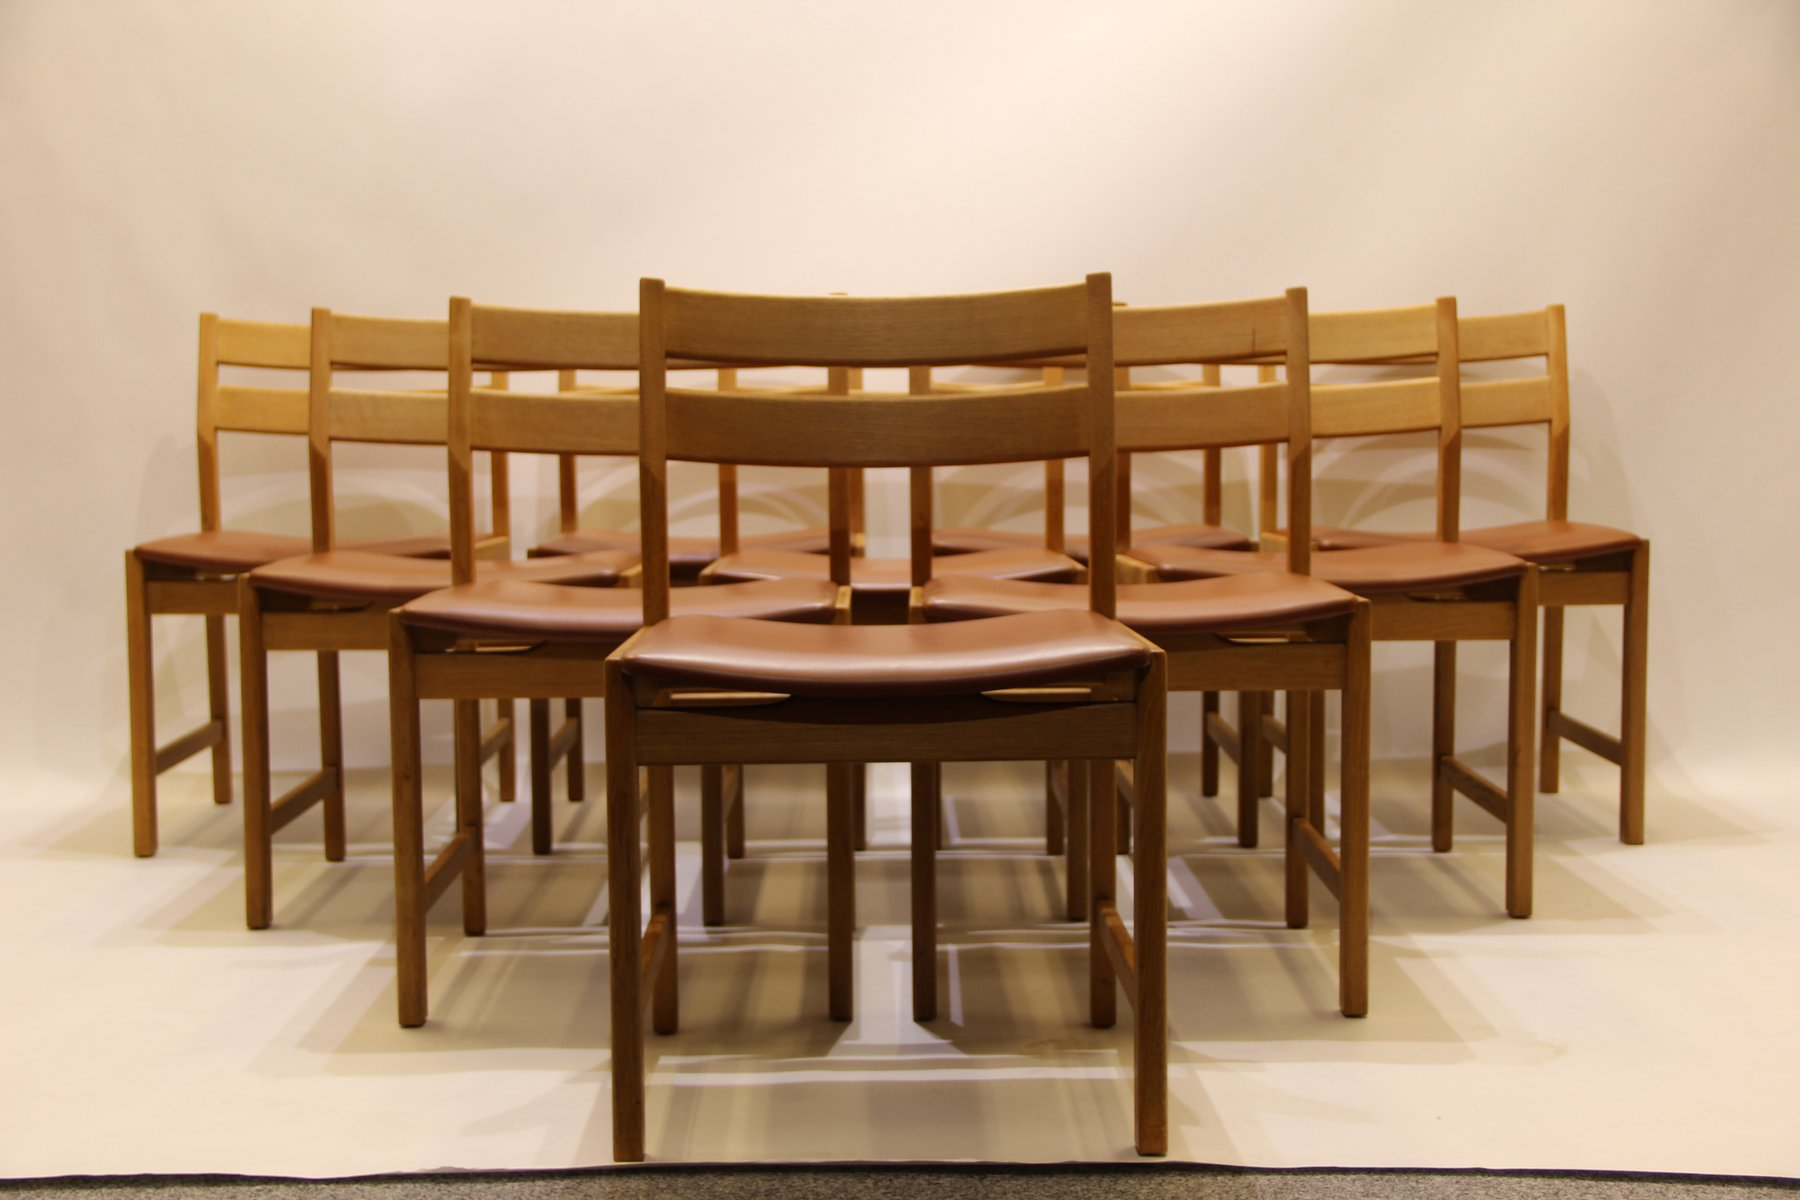 Vintage danish dining chairs in oak and brown leather by kurt østervig for kp mølber set of 10